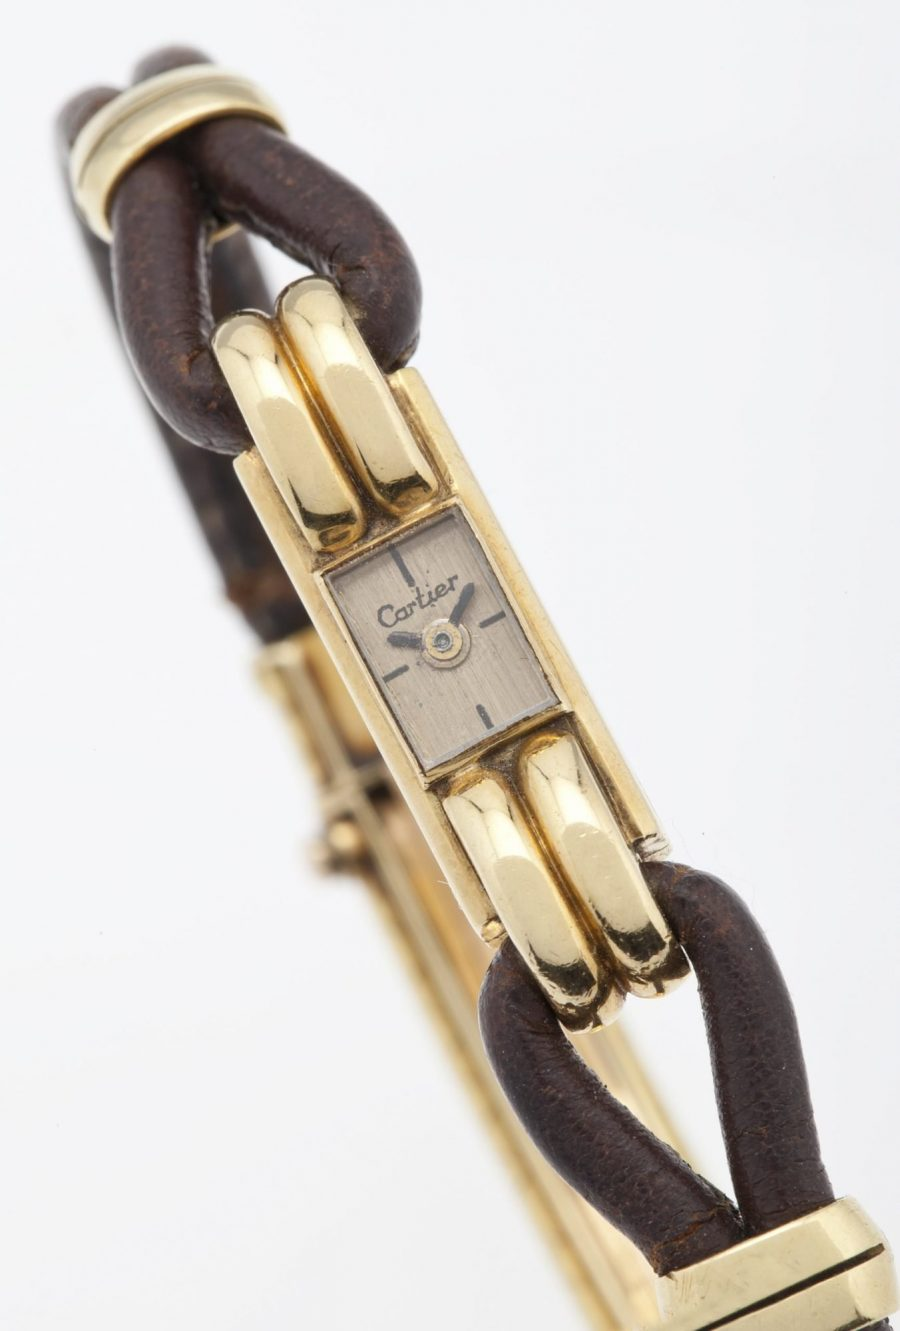 Cartier Retro mini dames horloge